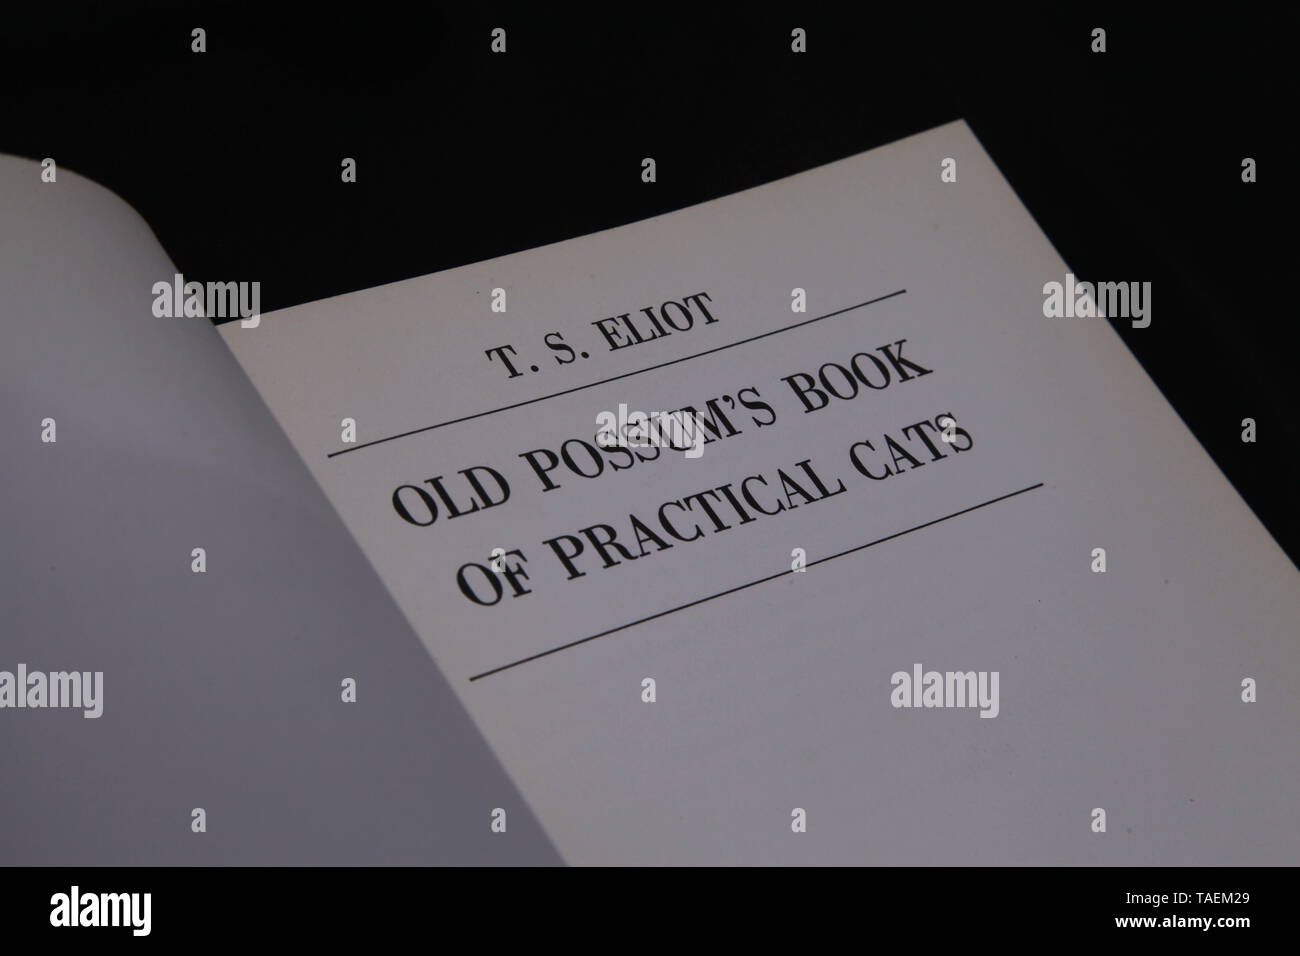 T.S. Eliot - Old Possum's Book of Practical Cats - Stock Image